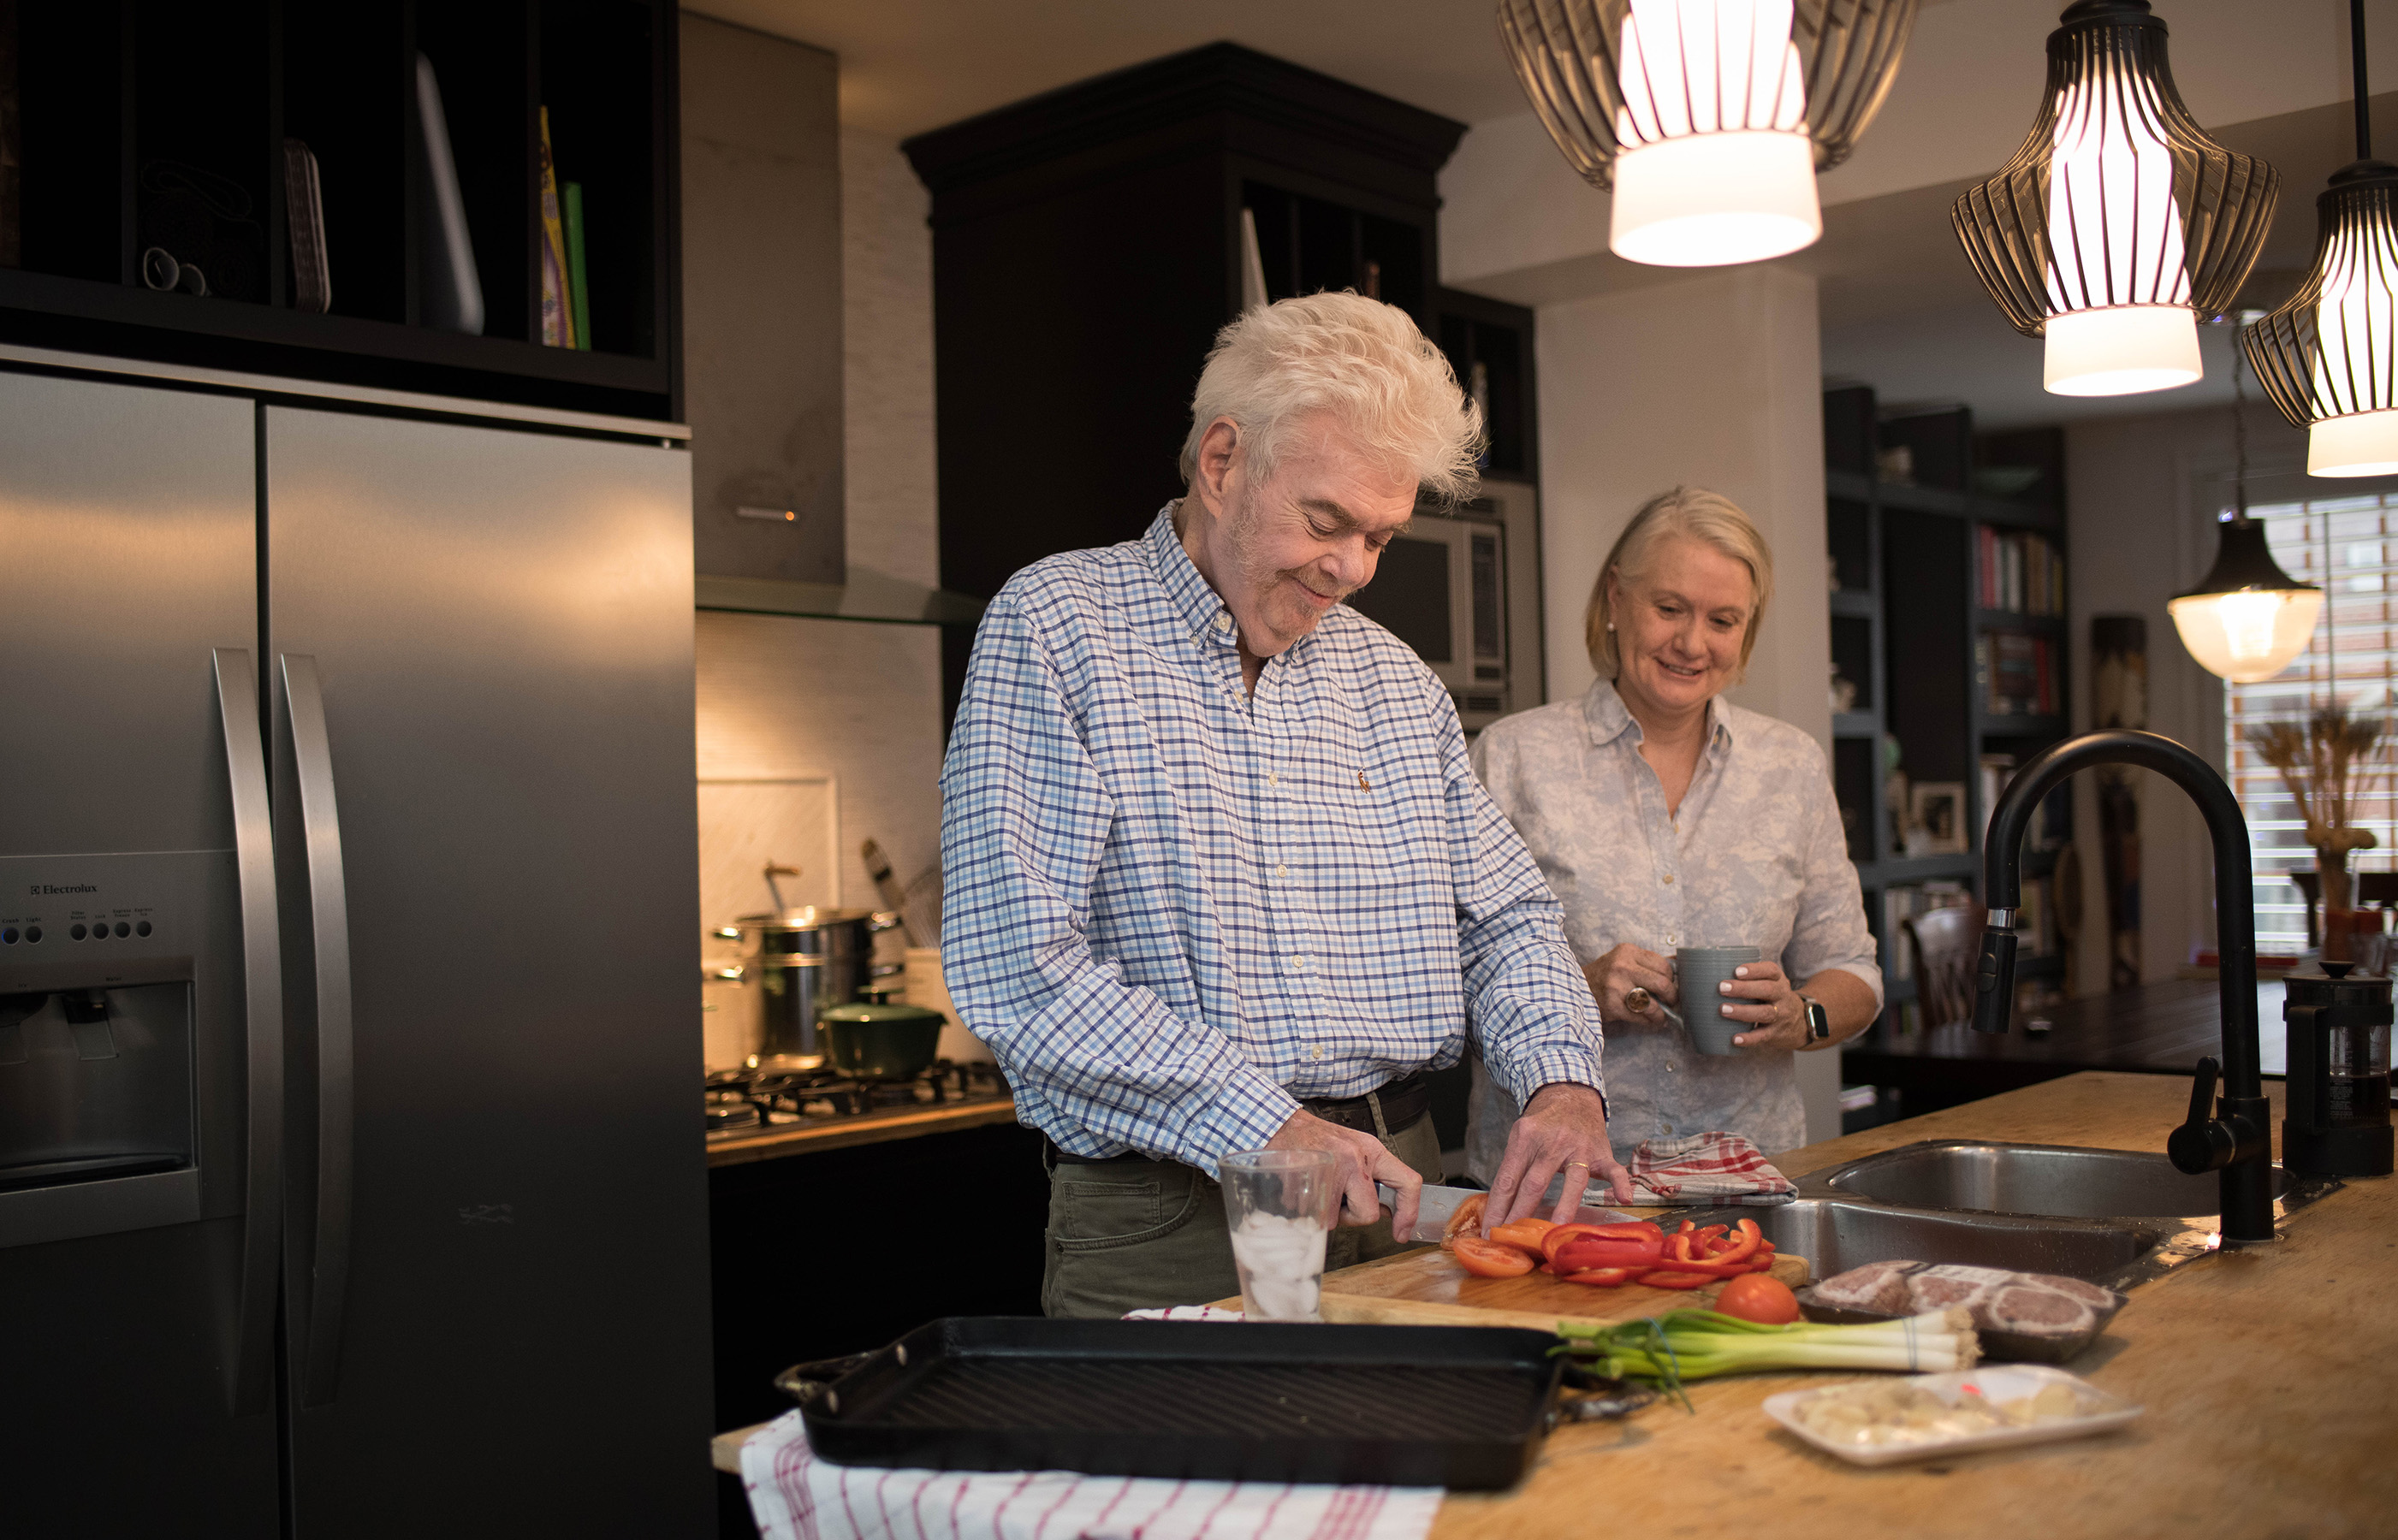 Plummer and Kennelly in their kitchen (Courtesy of Sunnybrook Health Sciences Centre)